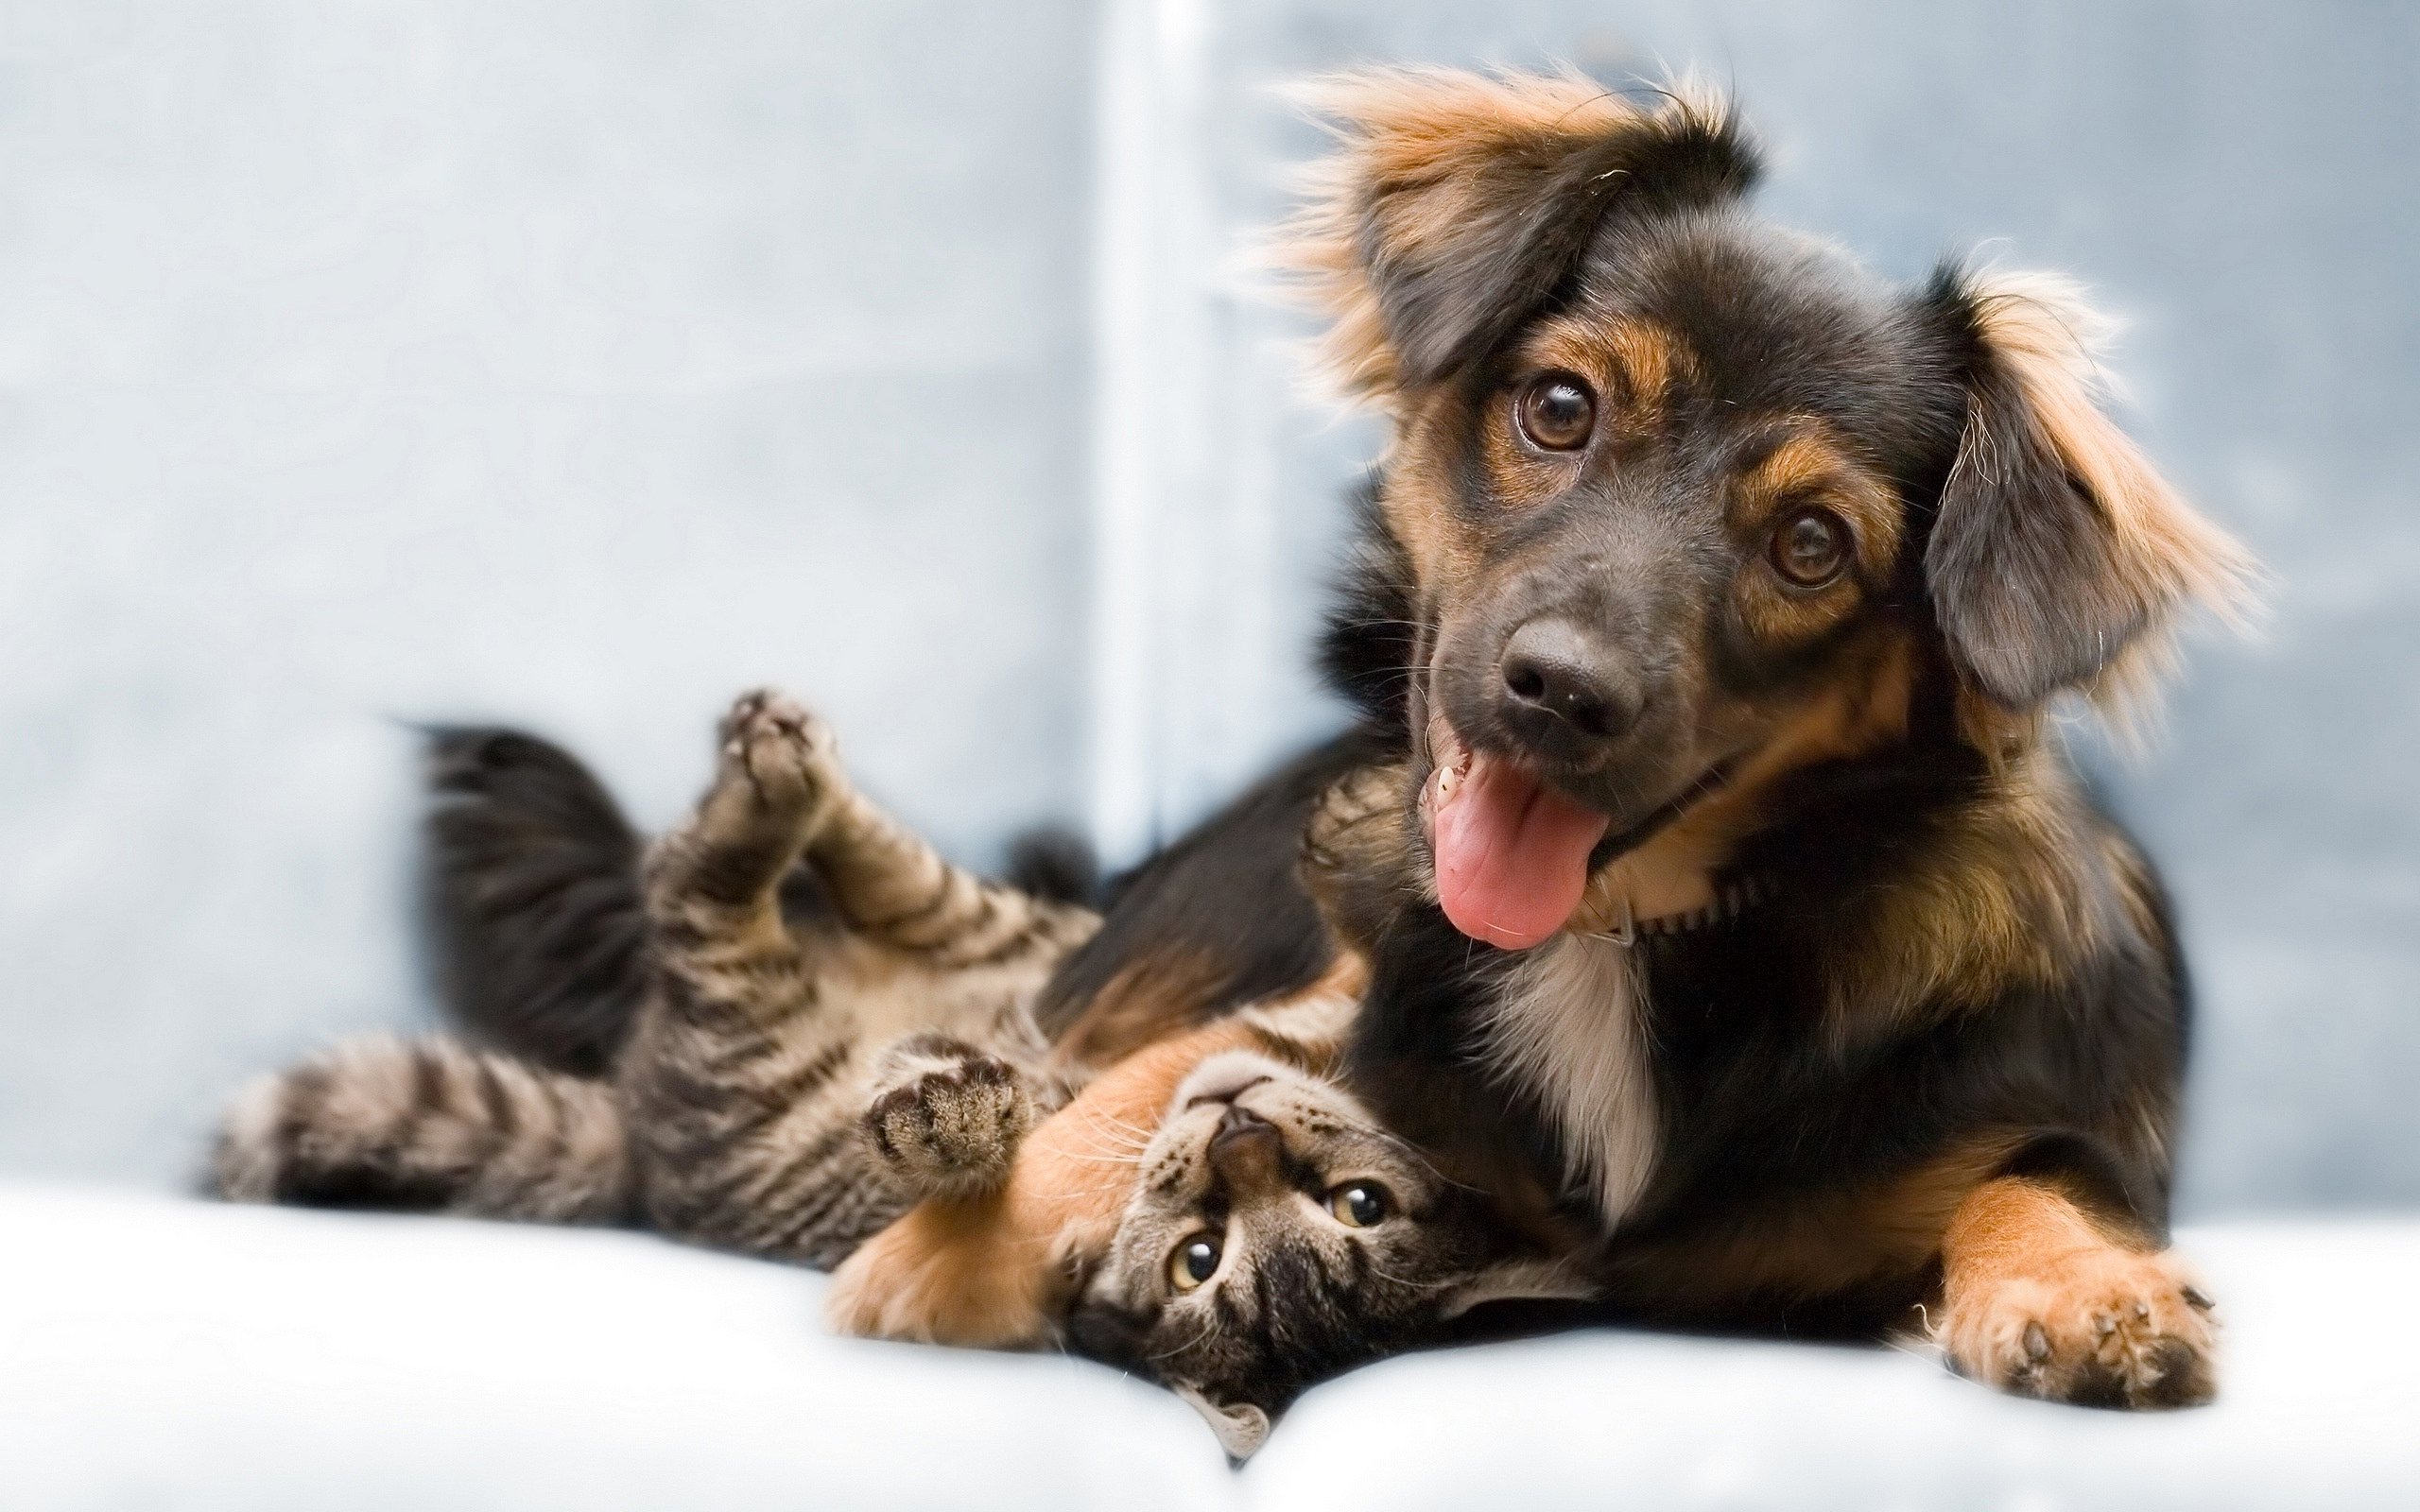 6986681-dog-cat-friends